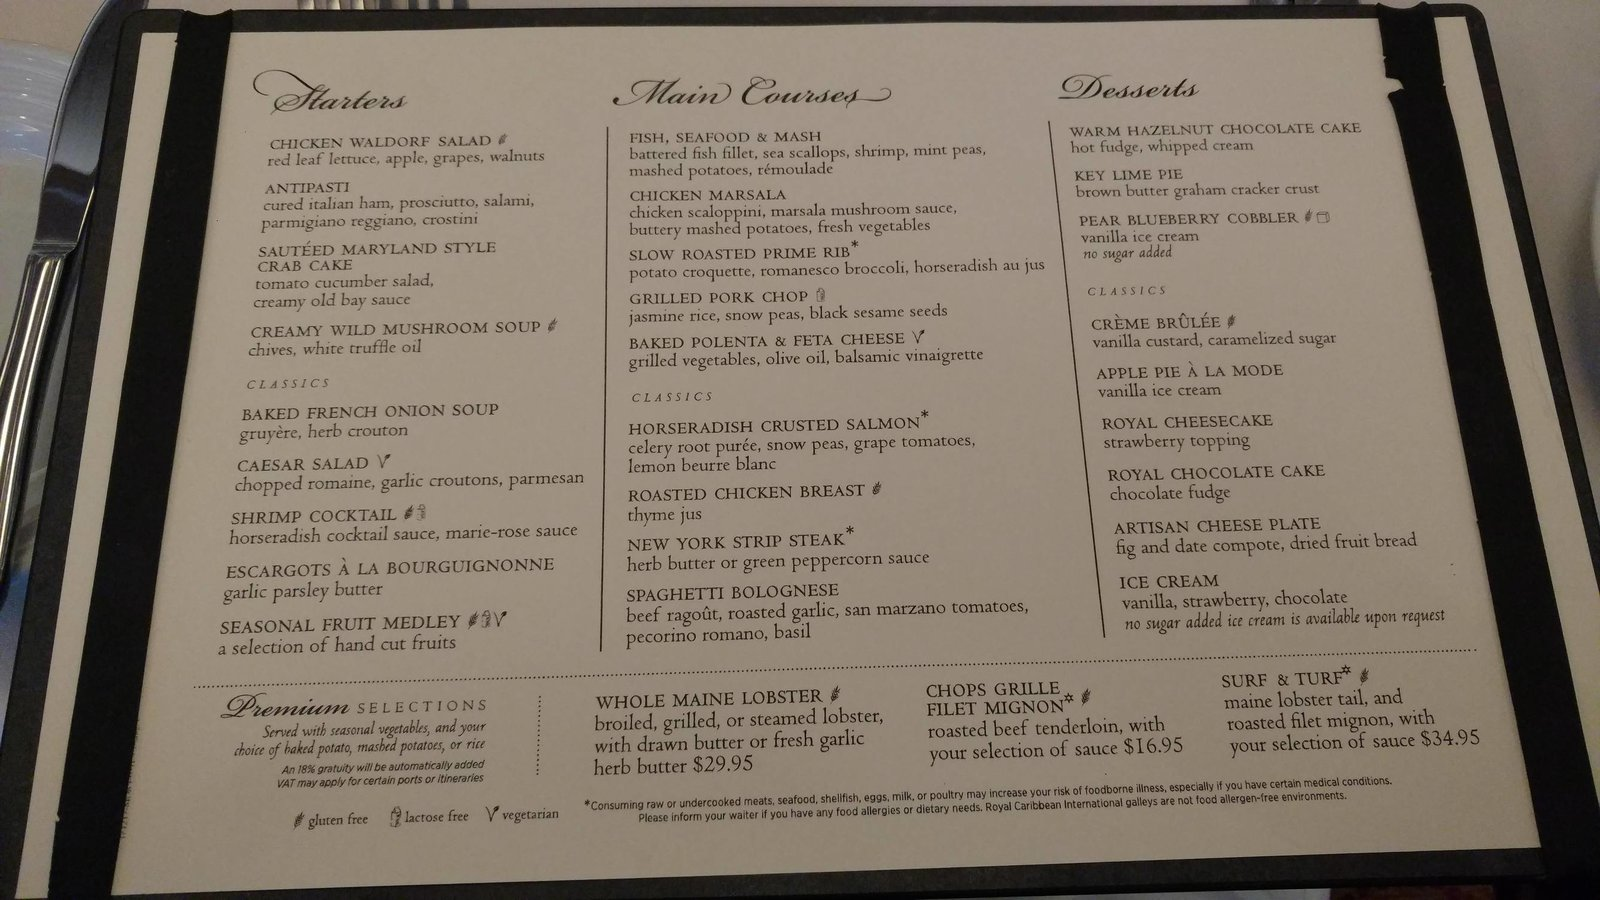 Rhapsody Menus - Day 1 Menu